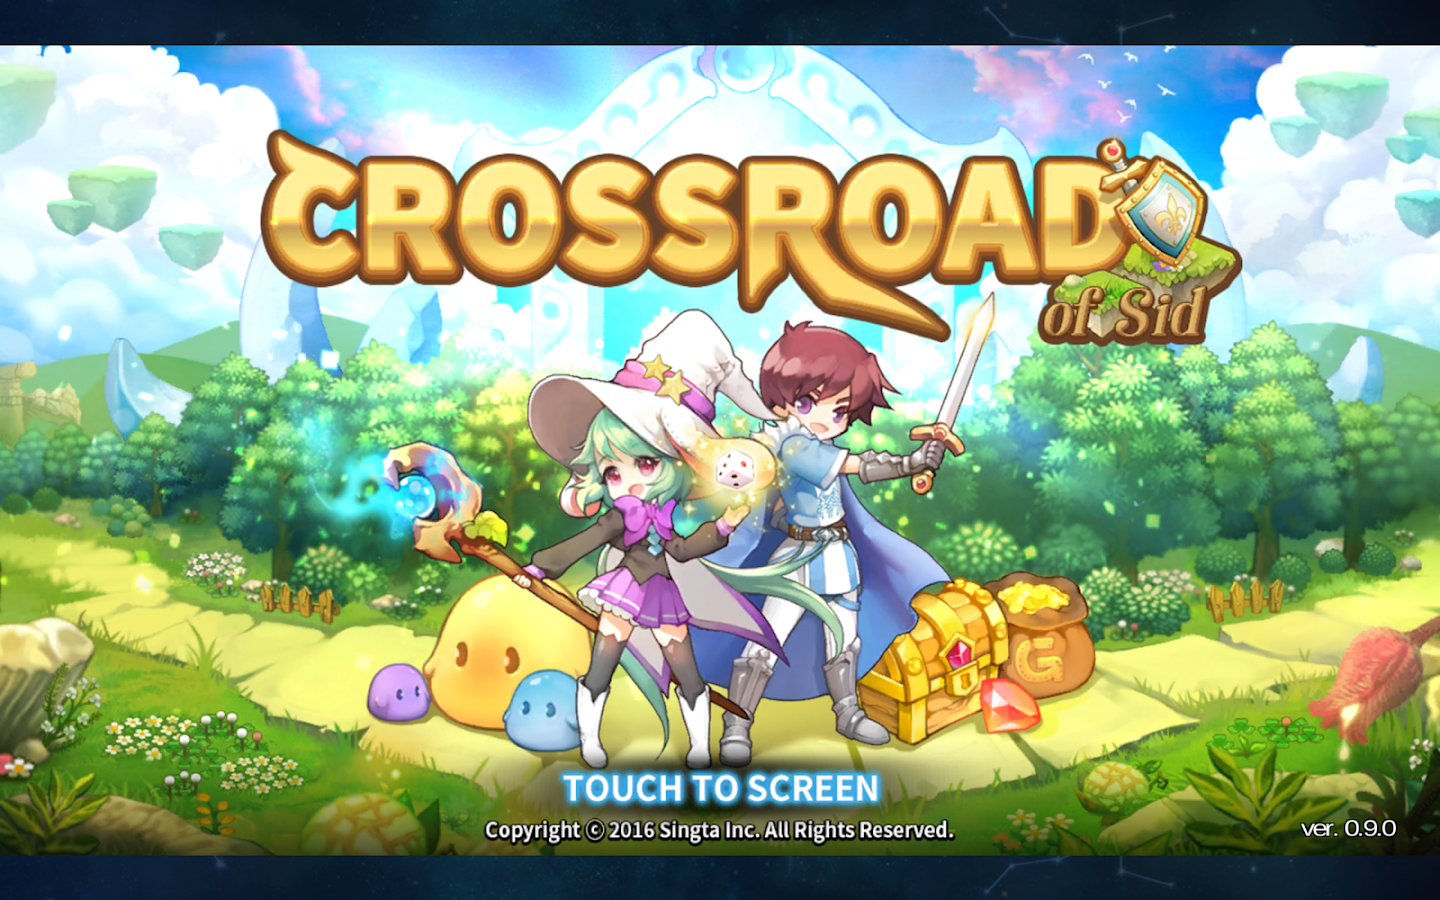 Crossroad of Sid Screenshot 7